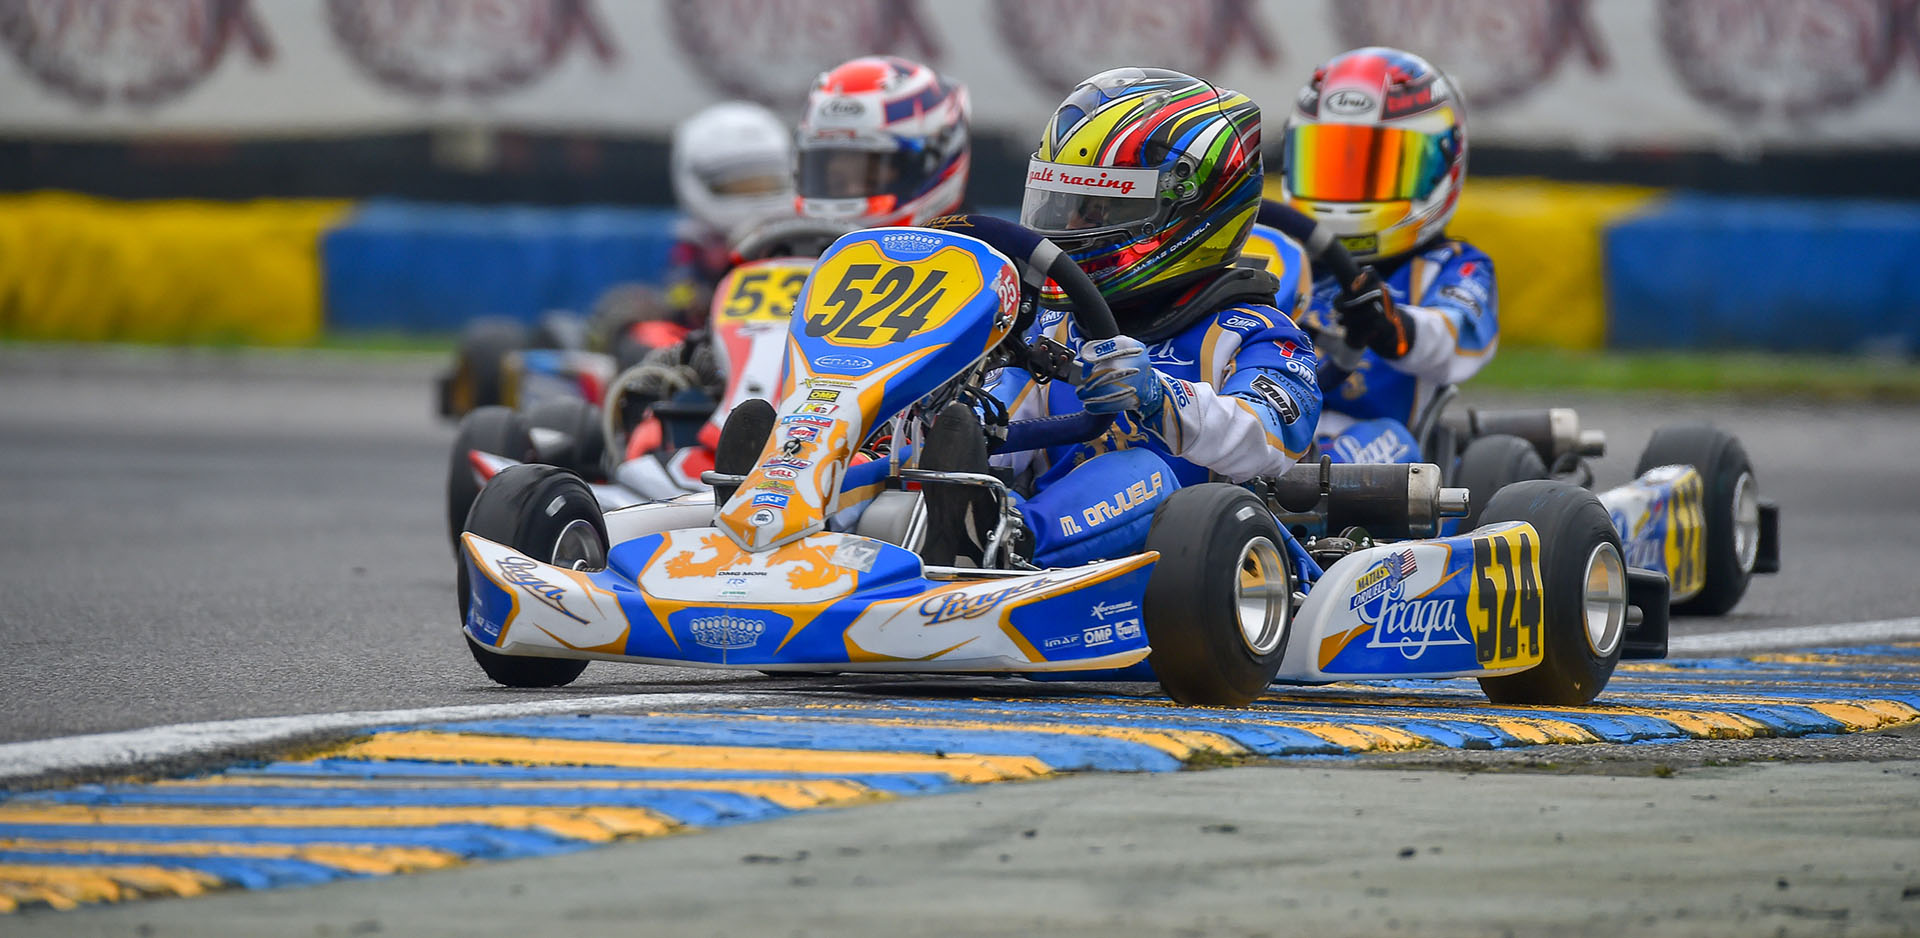 Pole position and the podium in round 2 of the WSK Open Cup